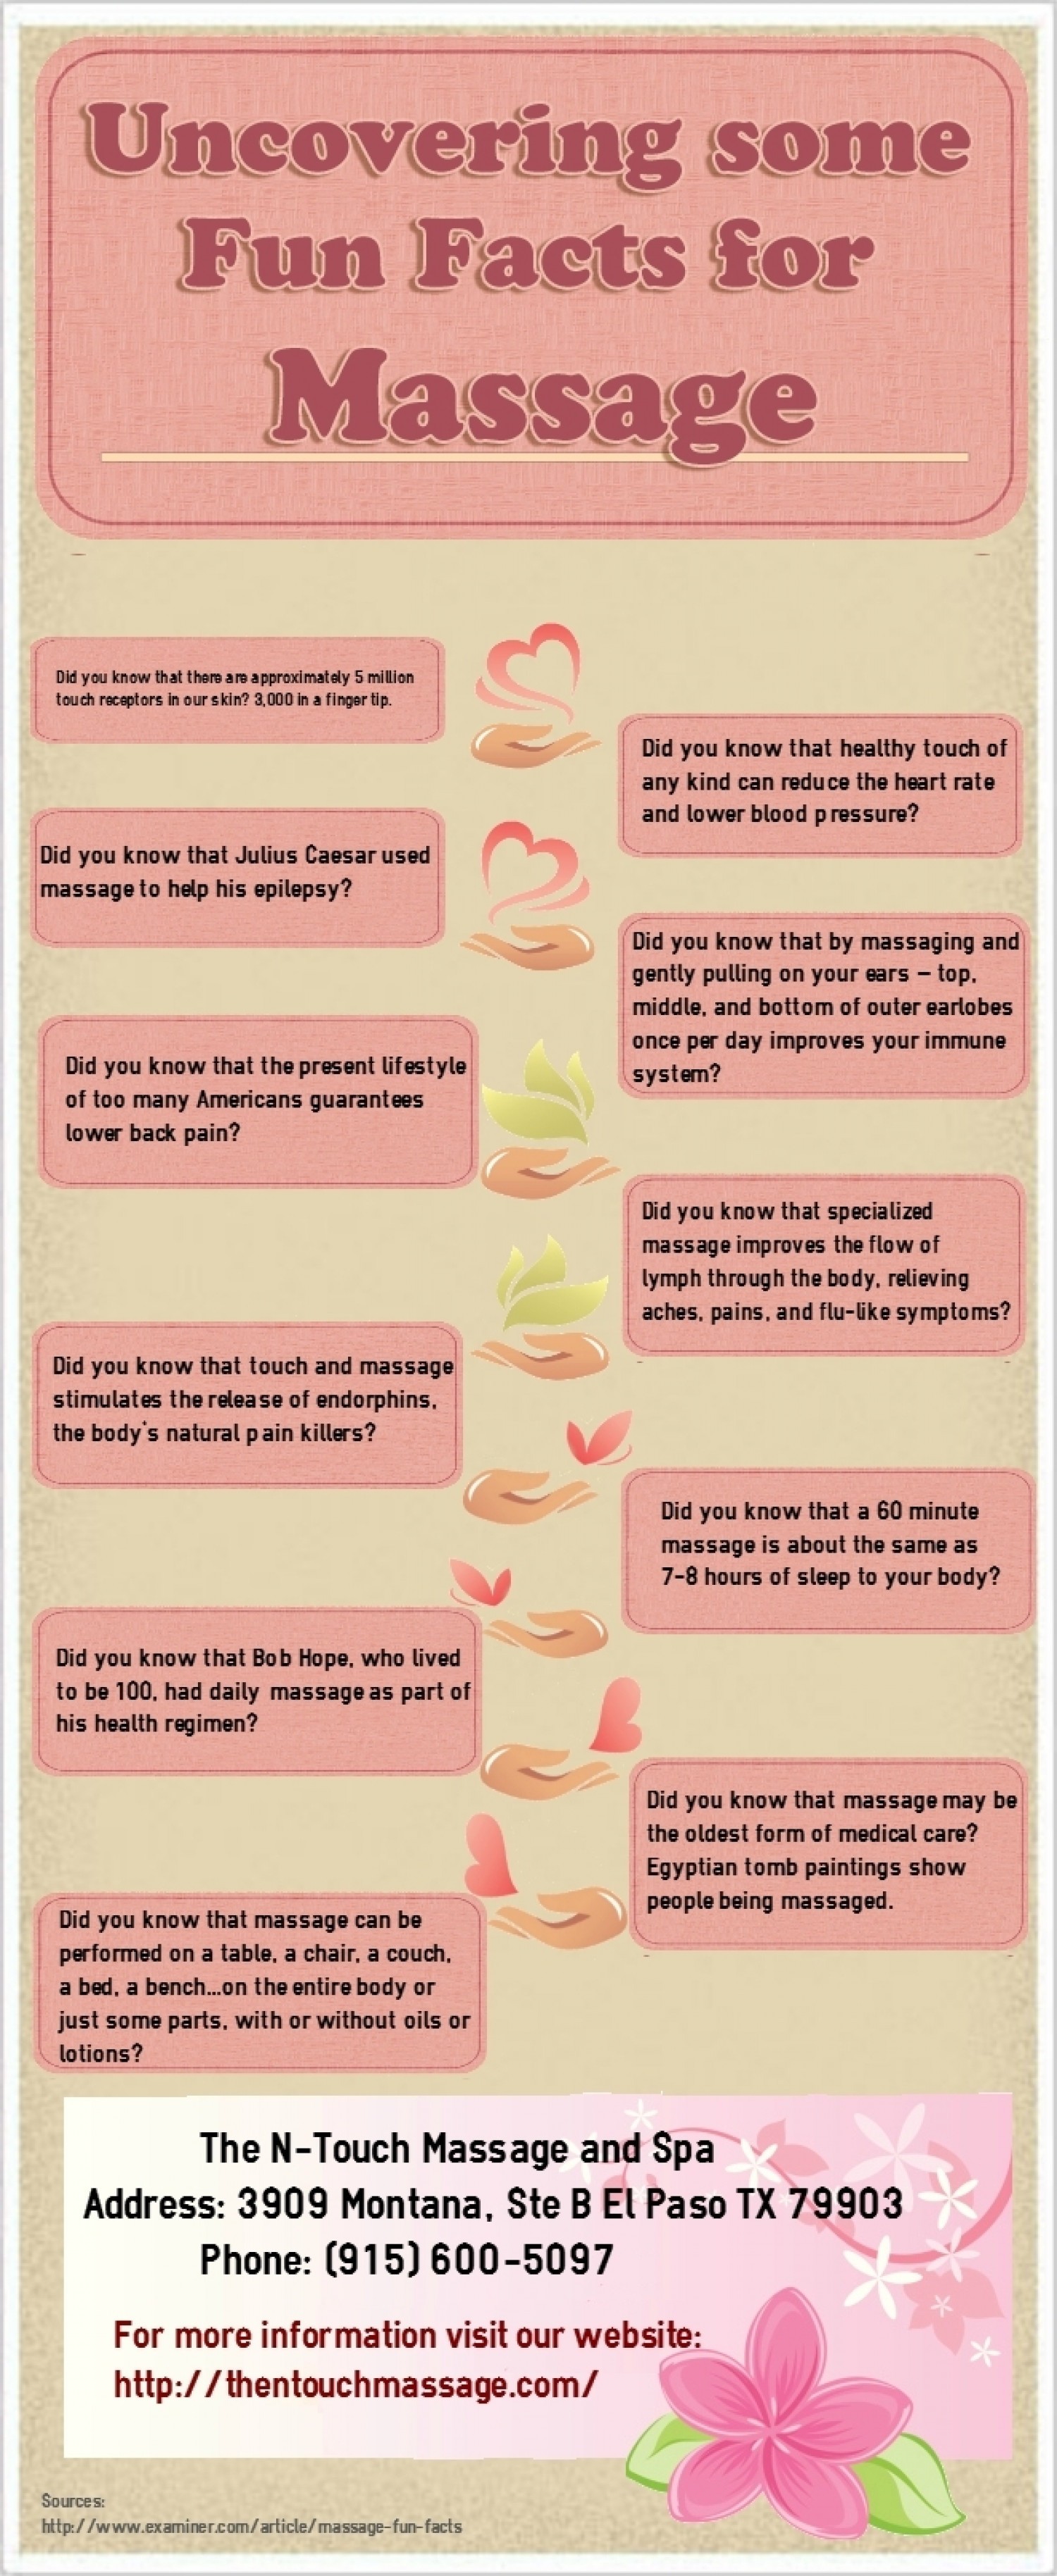 Uncovering some Fun Facts for Massage Infographic